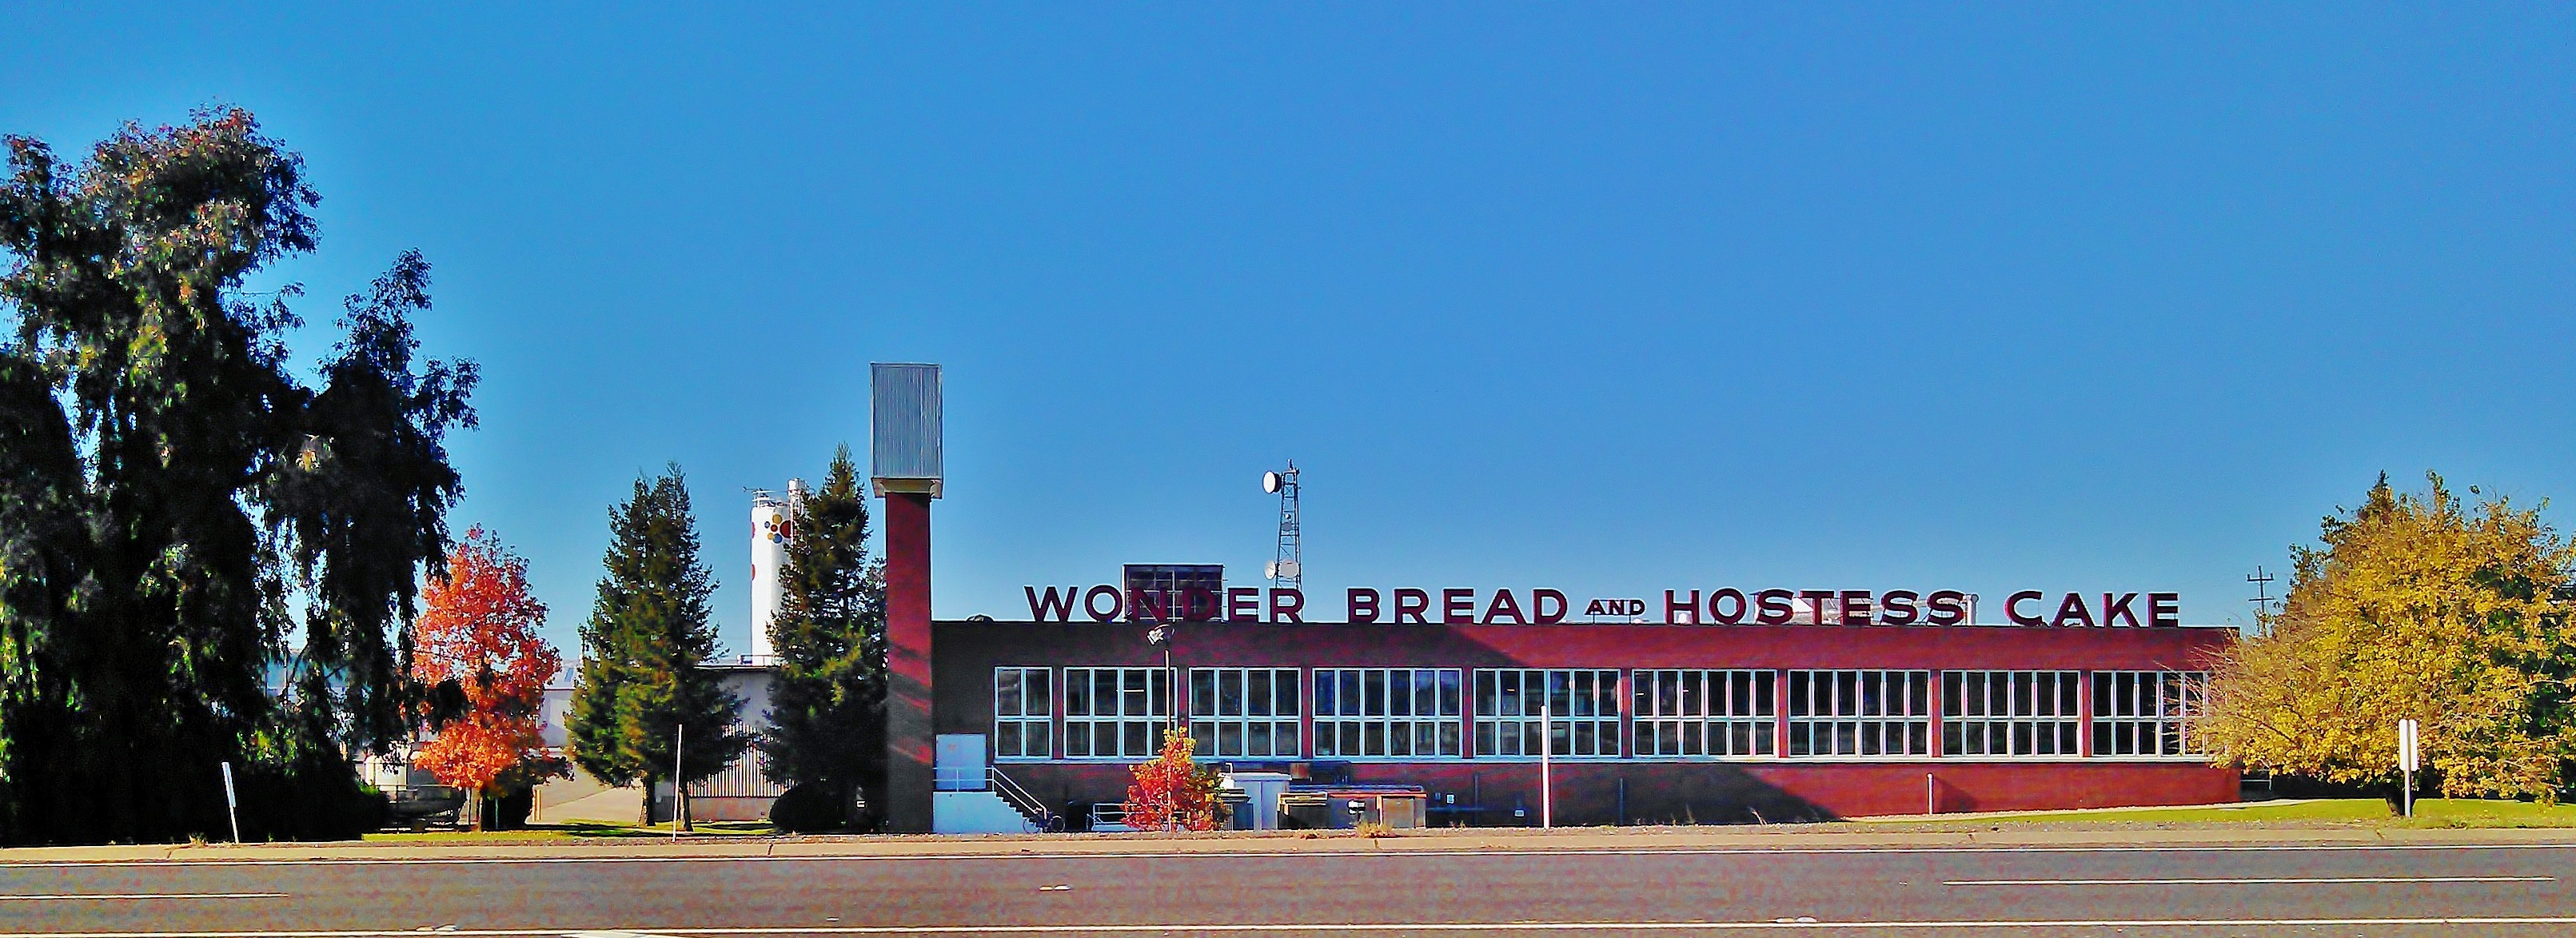 File:Wonder Bread Hostess bakery jpg - Wikimedia Commons